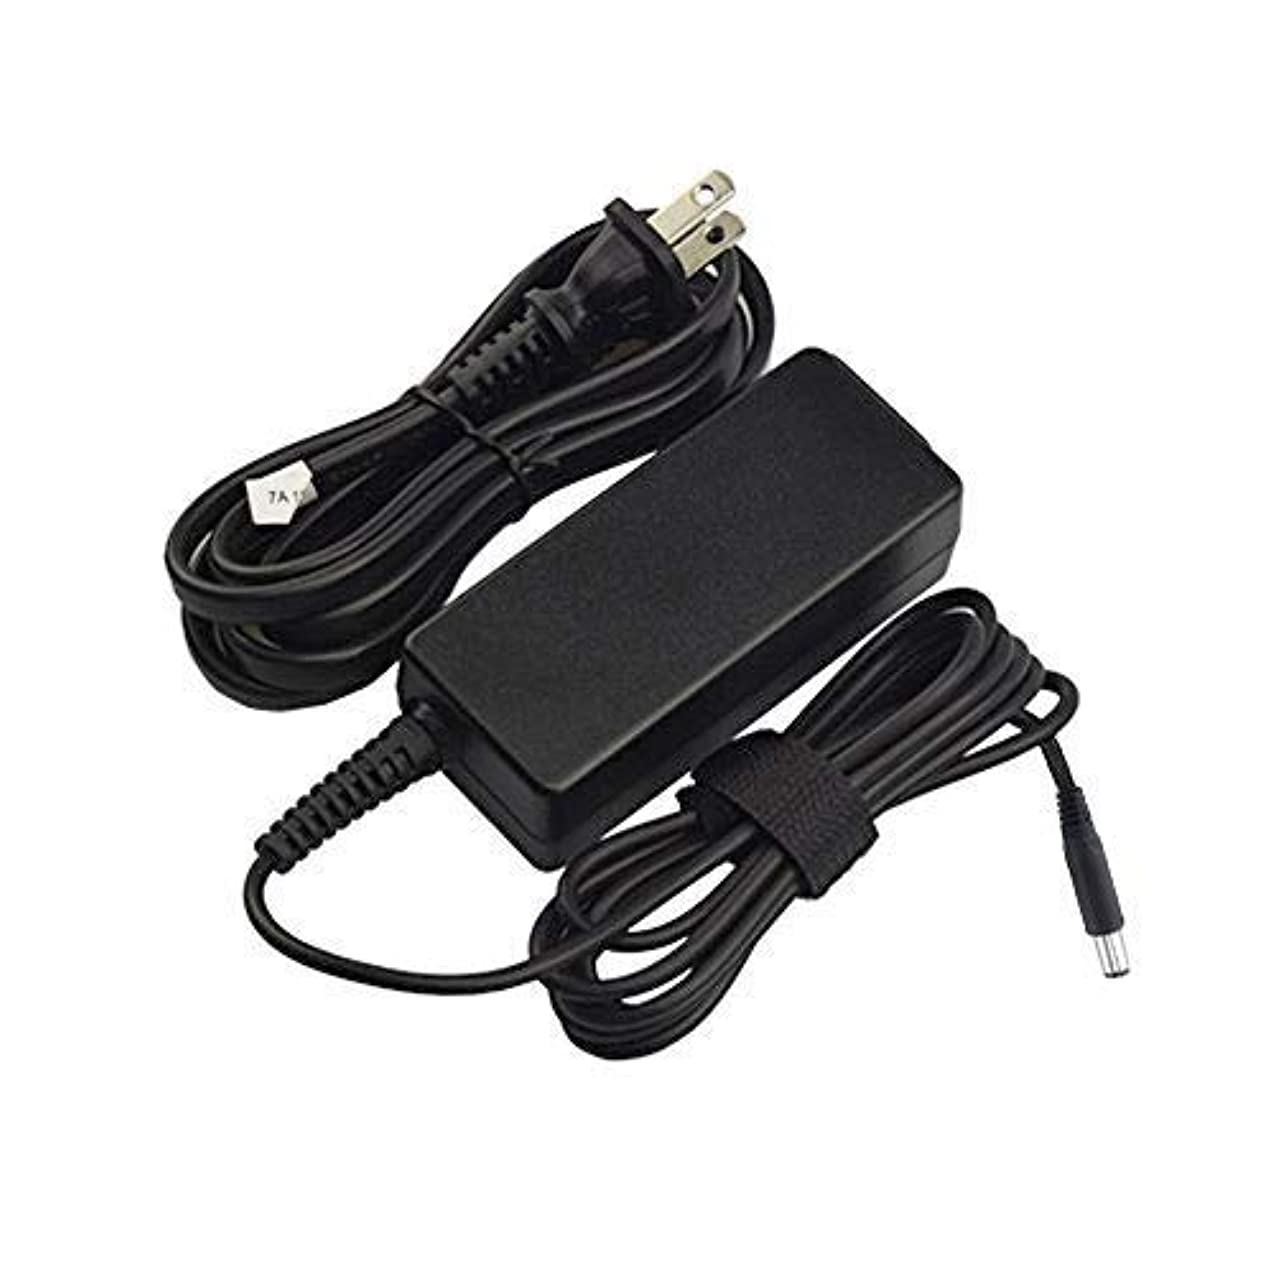 Charger Fit for HP ProBook 650 G1 Notebook PC Laptop Power Supply Adapter Cord